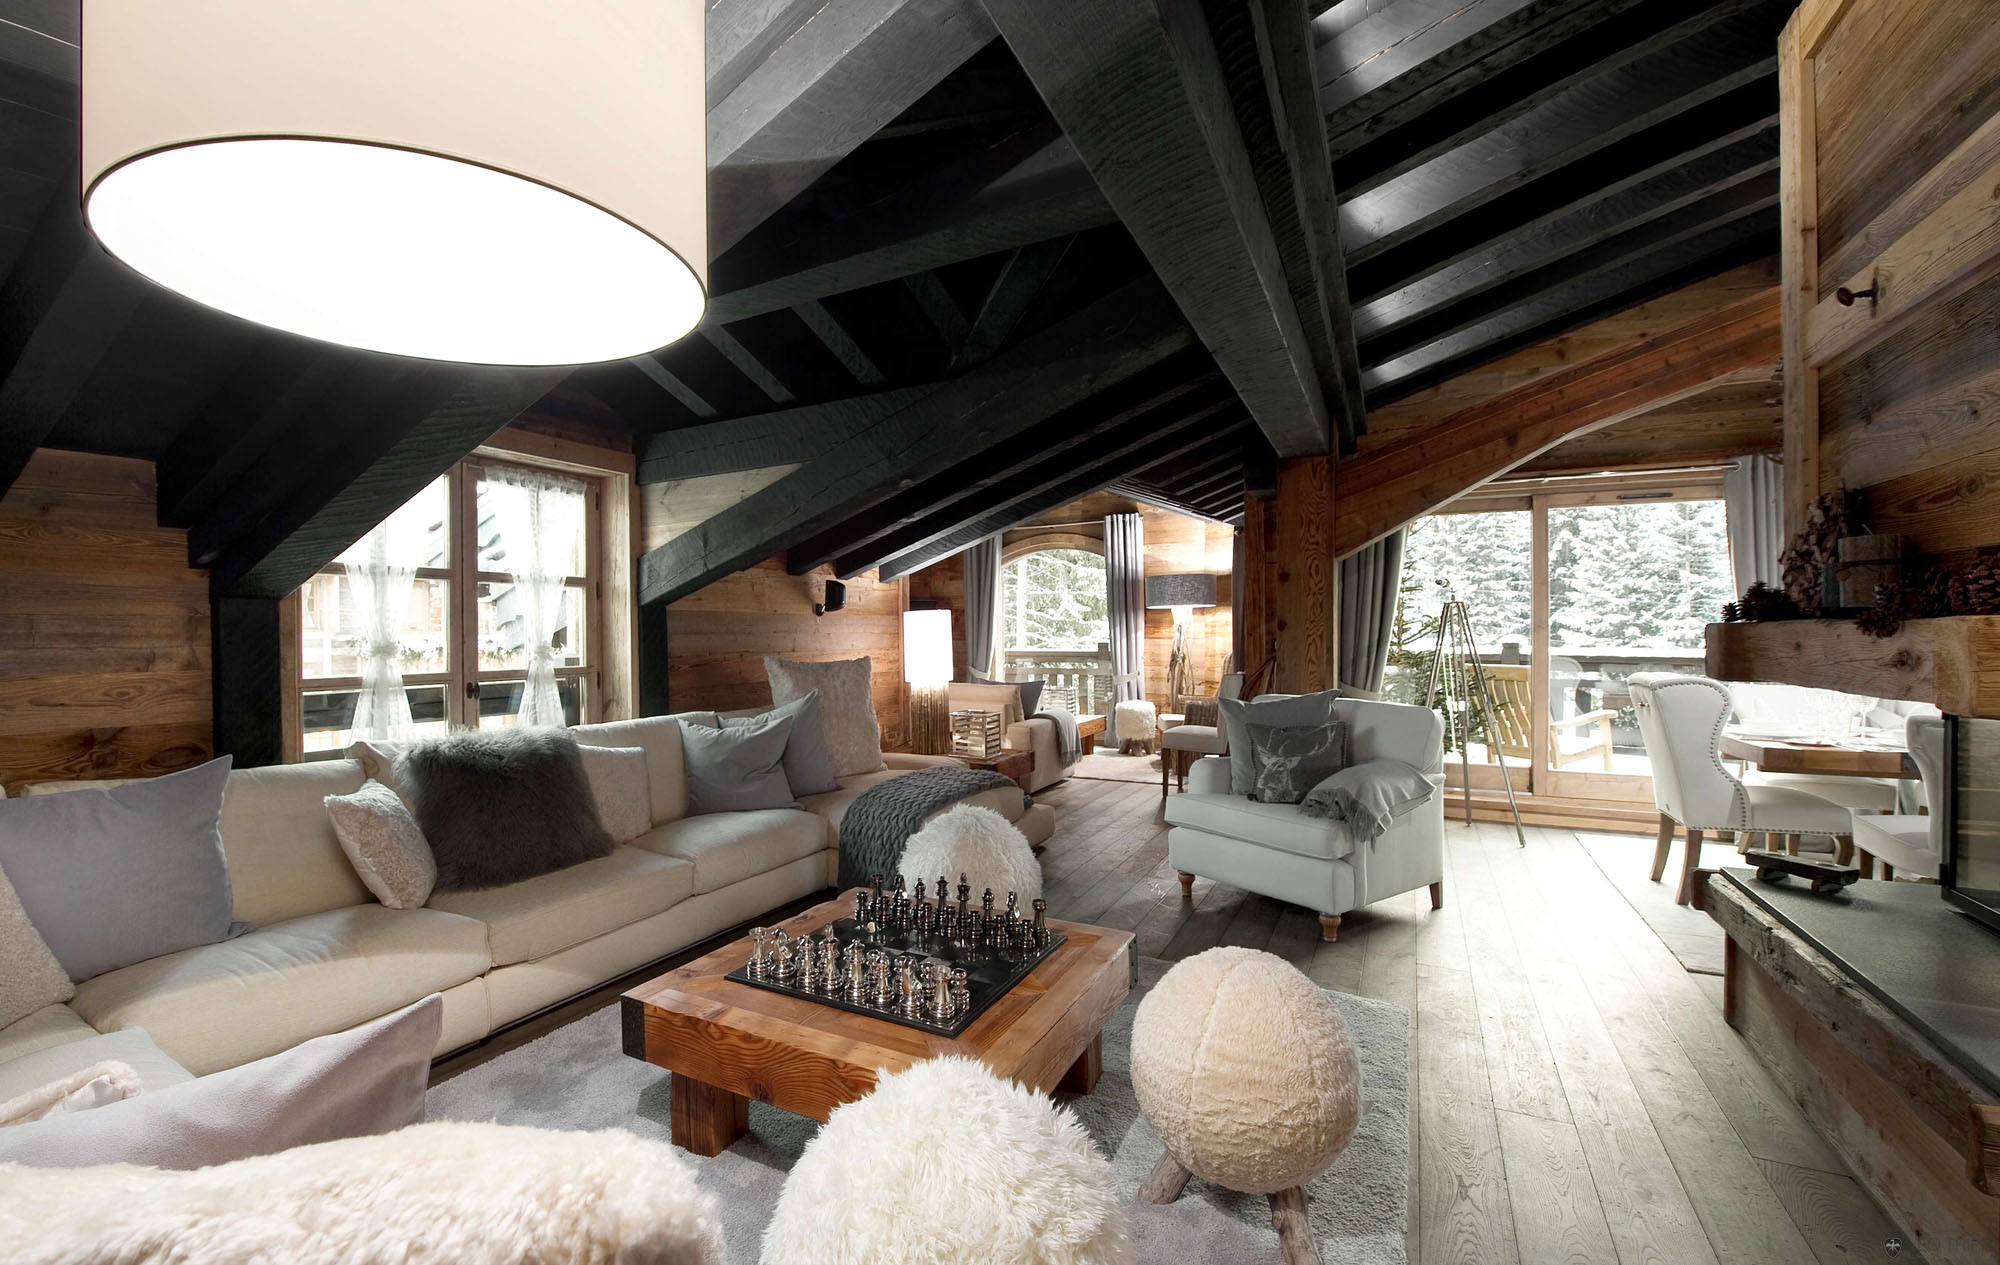 The Petit Chateau 1850  Courchevel  France 1  HomeDSGN